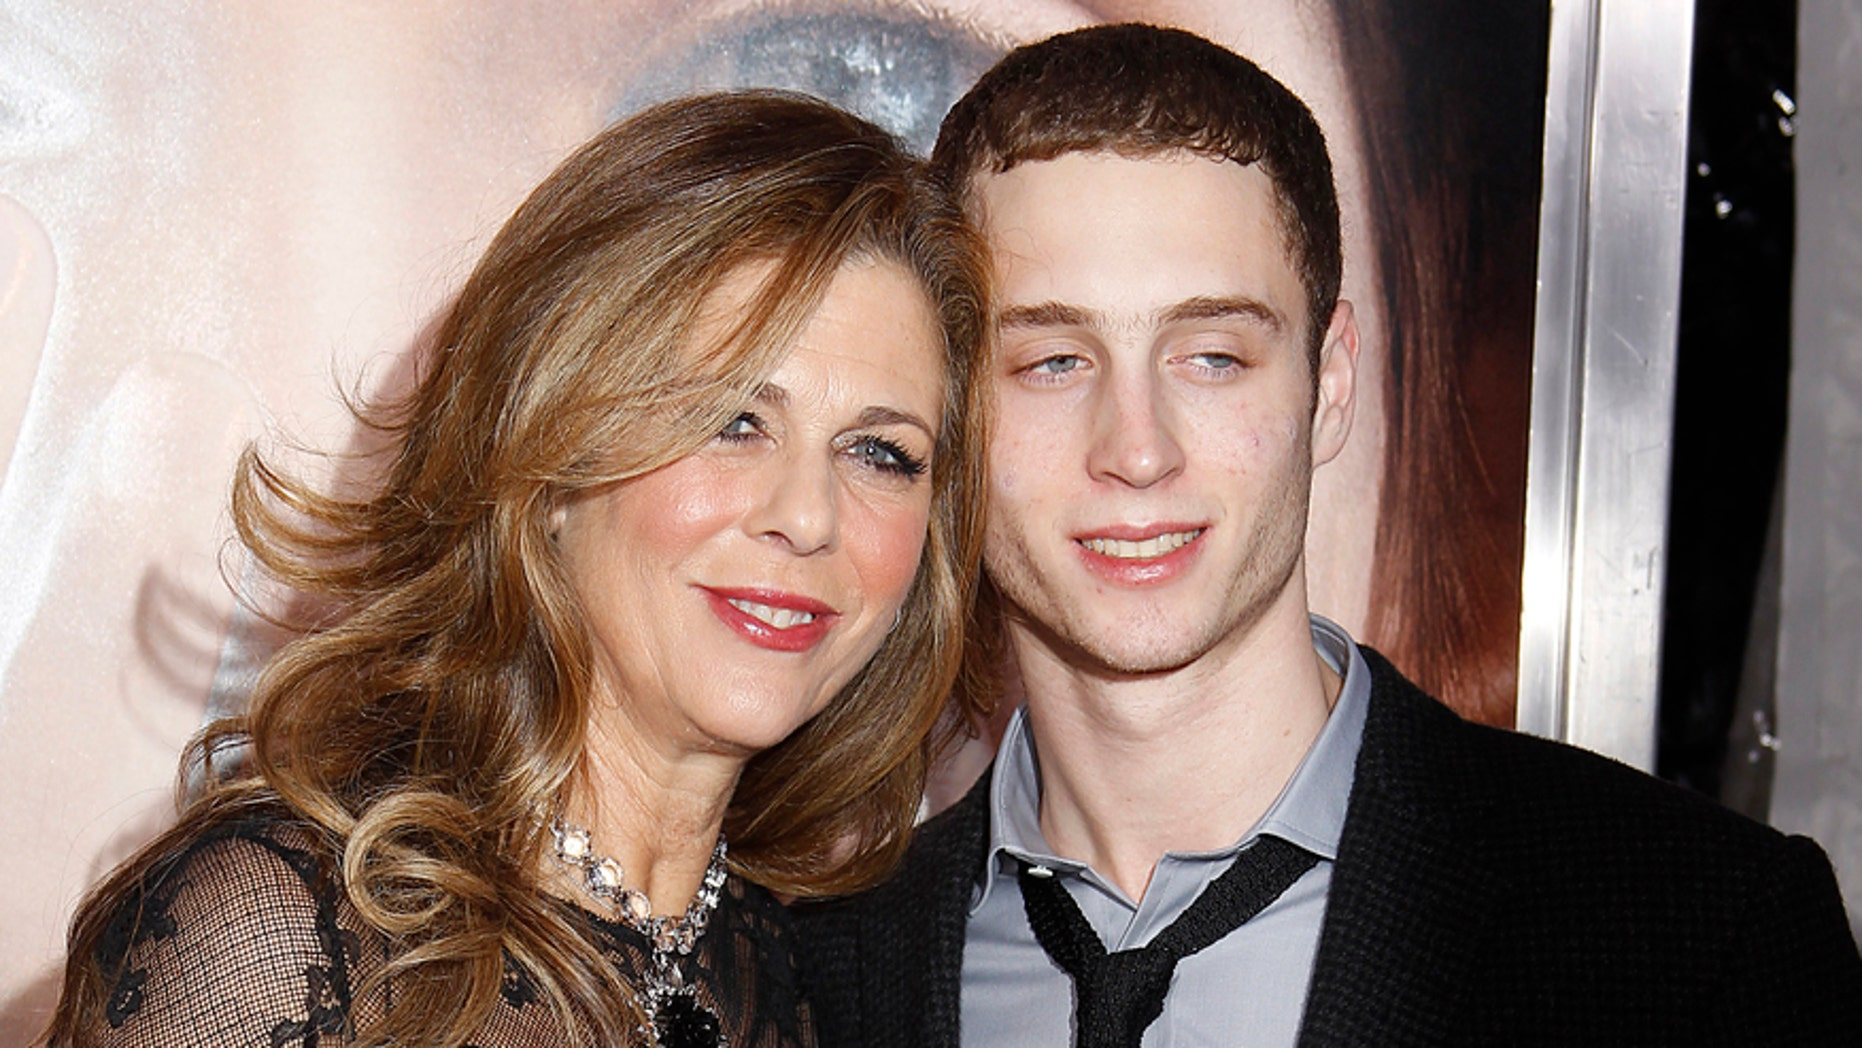 """Actress Rita Wilson and son Chester Hanks (R) arrive for the premiere of the film """"Extremely Loud and Incredibly Close"""" in New York, December 15, 2011.       REUTERS/Carlo Allegri (UNITED STATES - Tags: ENTERTAINMENT) - RTR2VAYE"""